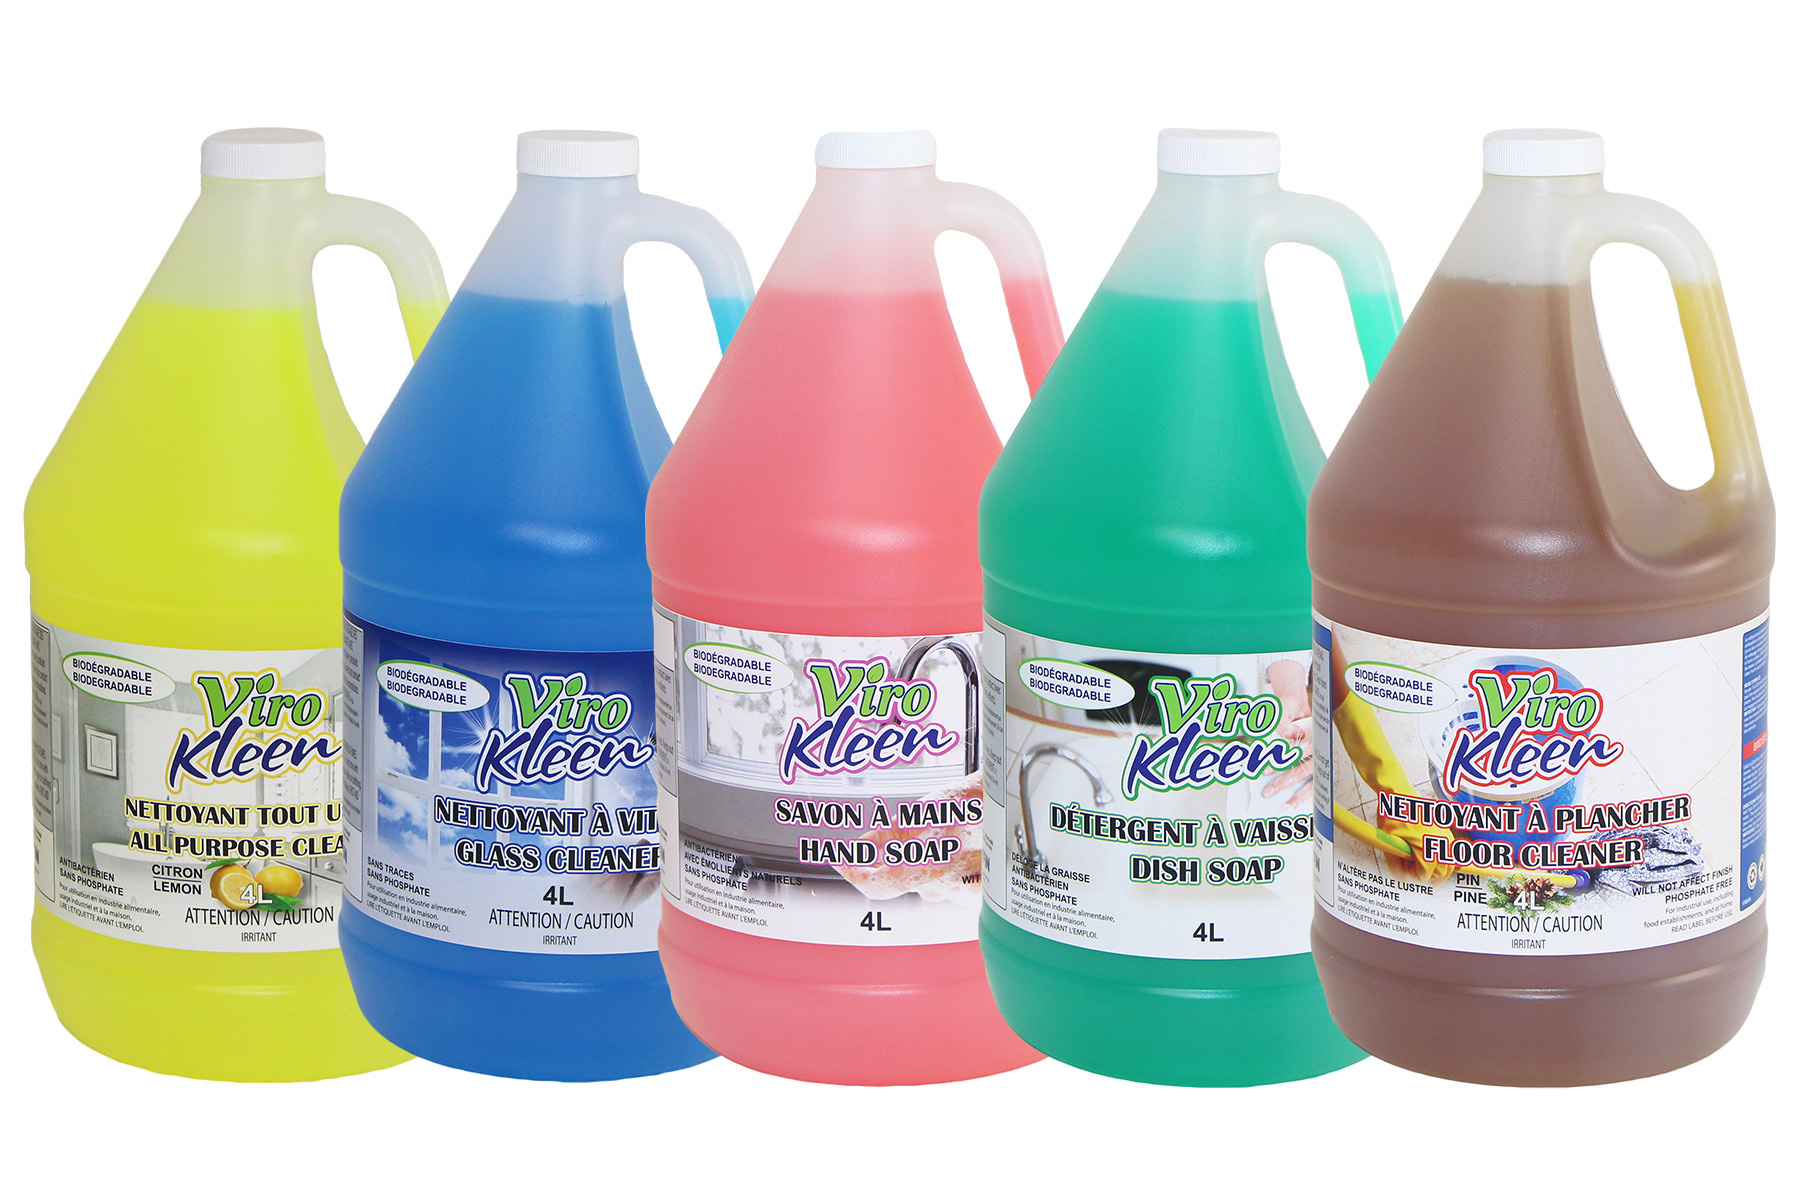 Viro Kleen Industrial Cleaners